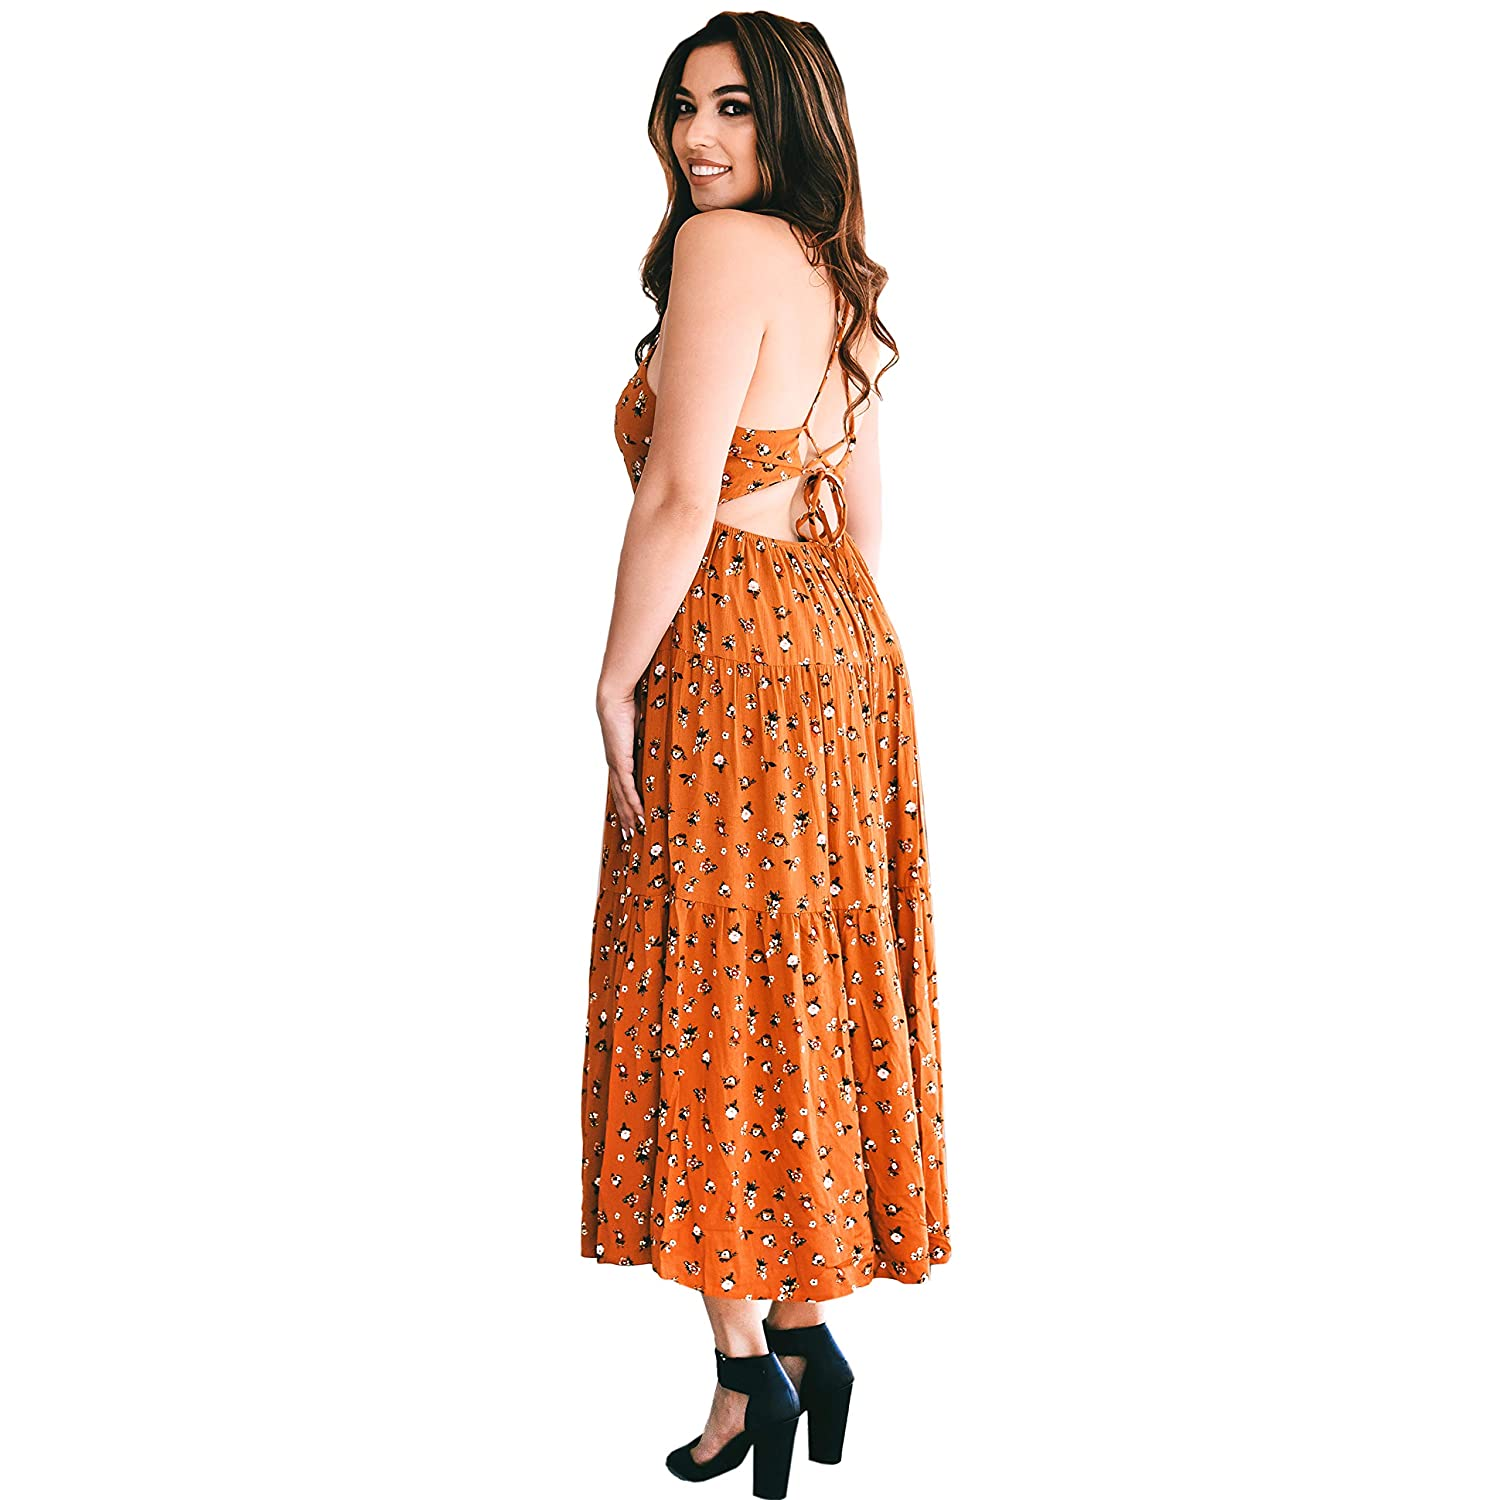 Elliott and Oliver Co. Bohemian Floral Maxi Dress Long Tiered Midi Dress Laced Strap Back Stretch Waist